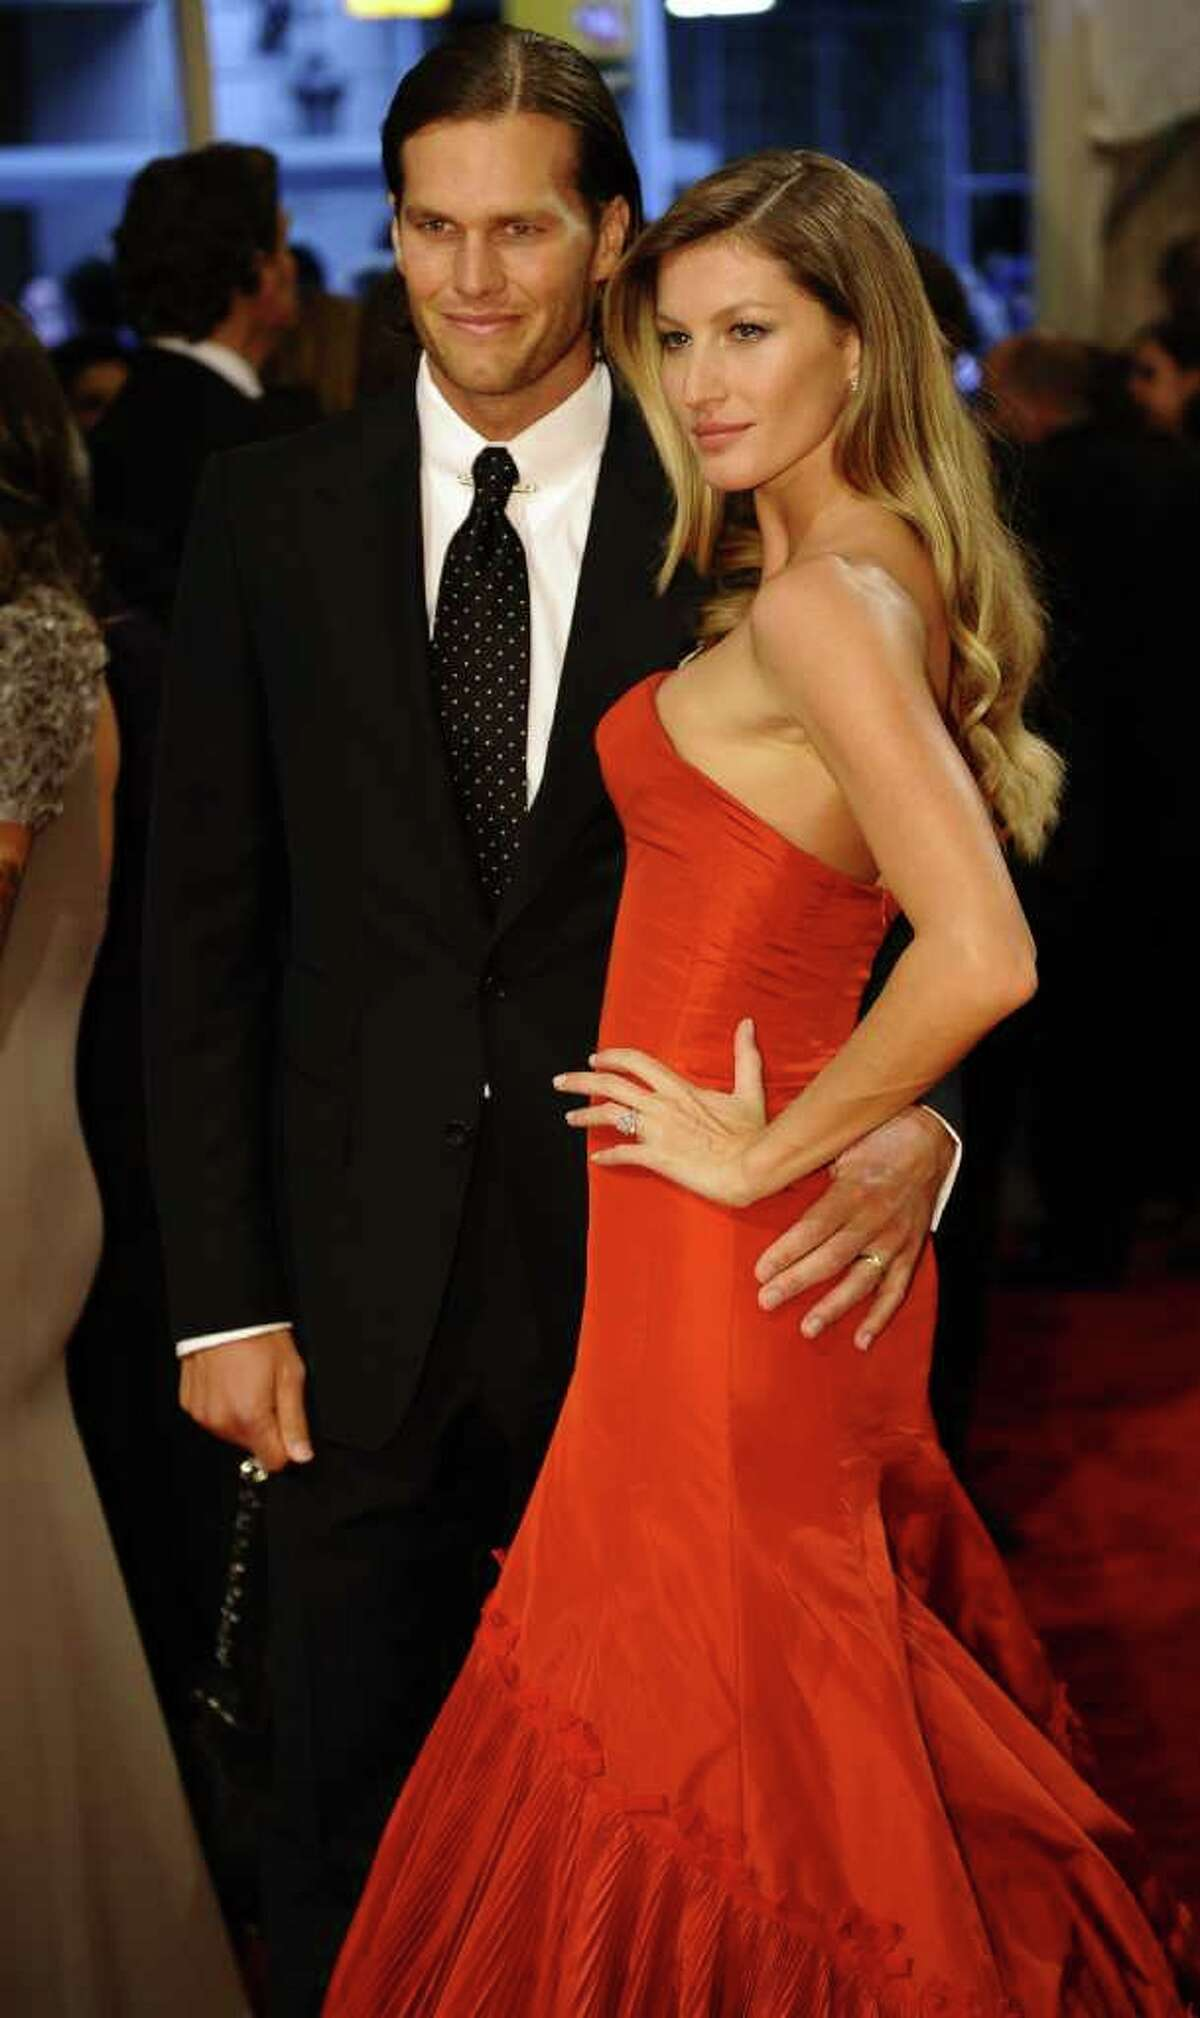 Gisele Bundchen (2): Because everything else is going so horribly in his life, Tom Brady, the Super Bowl-winning, MVP QB Poster Boy (and Pretty Boy) landed a Victoria's Secret model for a wife.